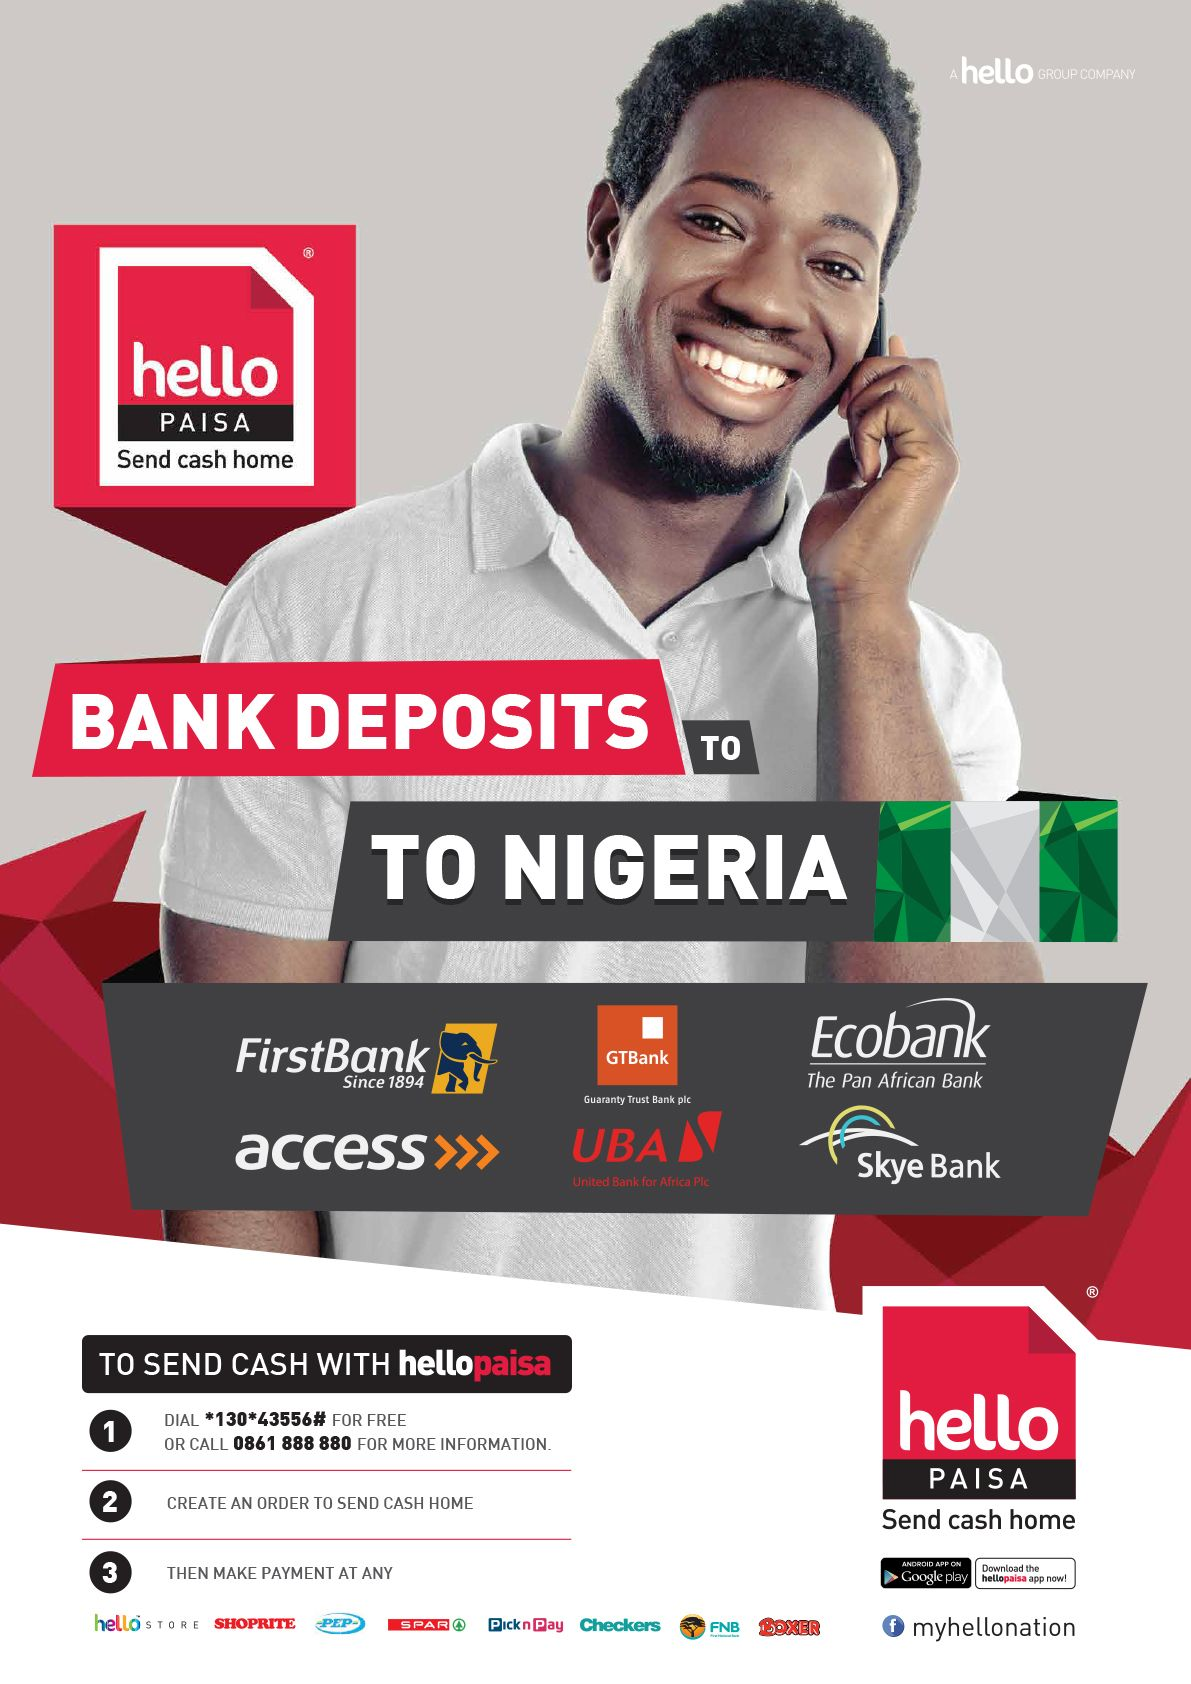 Send Money To Nigeria With Hello Paisa Www Hellopaisa Co Za Design By Group Marketing